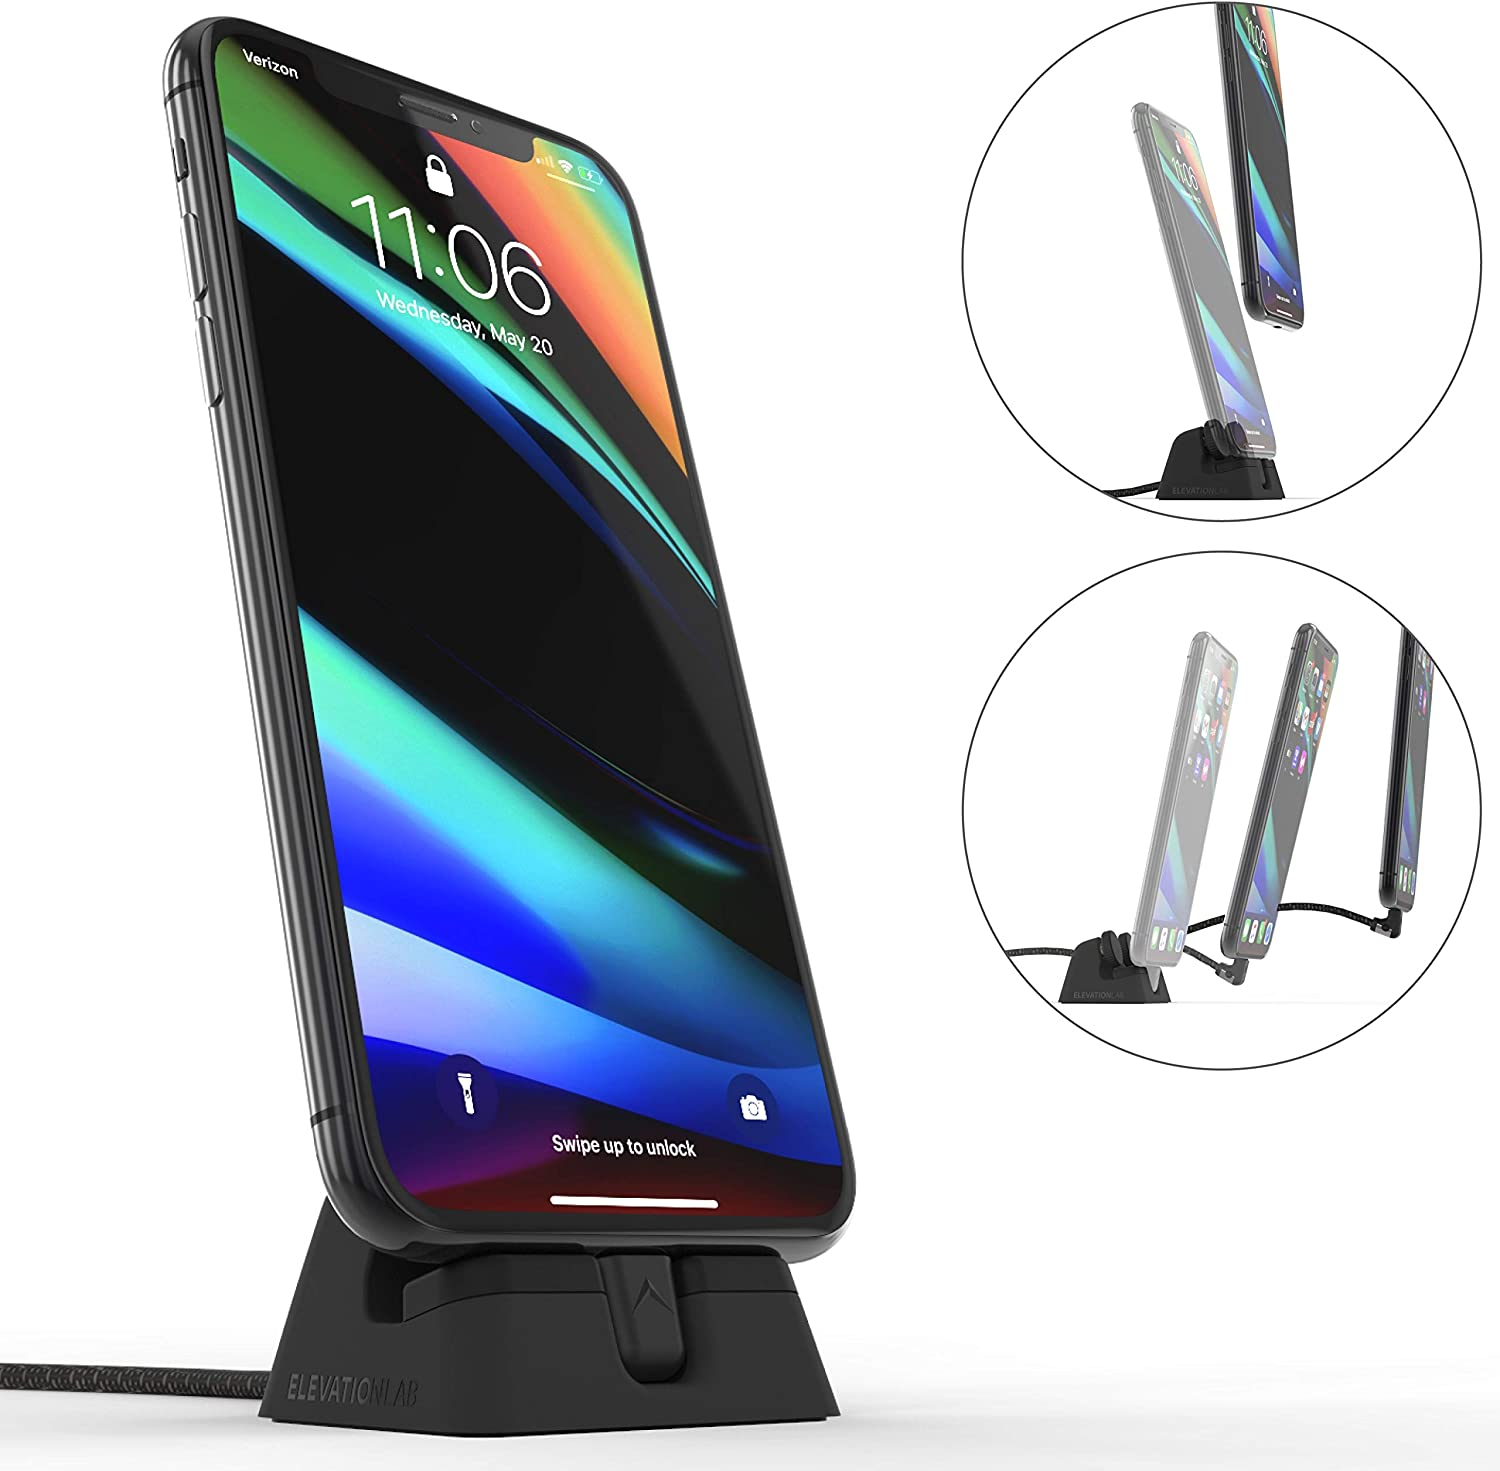 ElevationLab Cord Dock V2 - Hybrid iPhone Lightning Charging Dock & Cable, Adjustable Phone Stand Holder, Desktop Docking Station Cradle, Charge Stand, MFi Certified